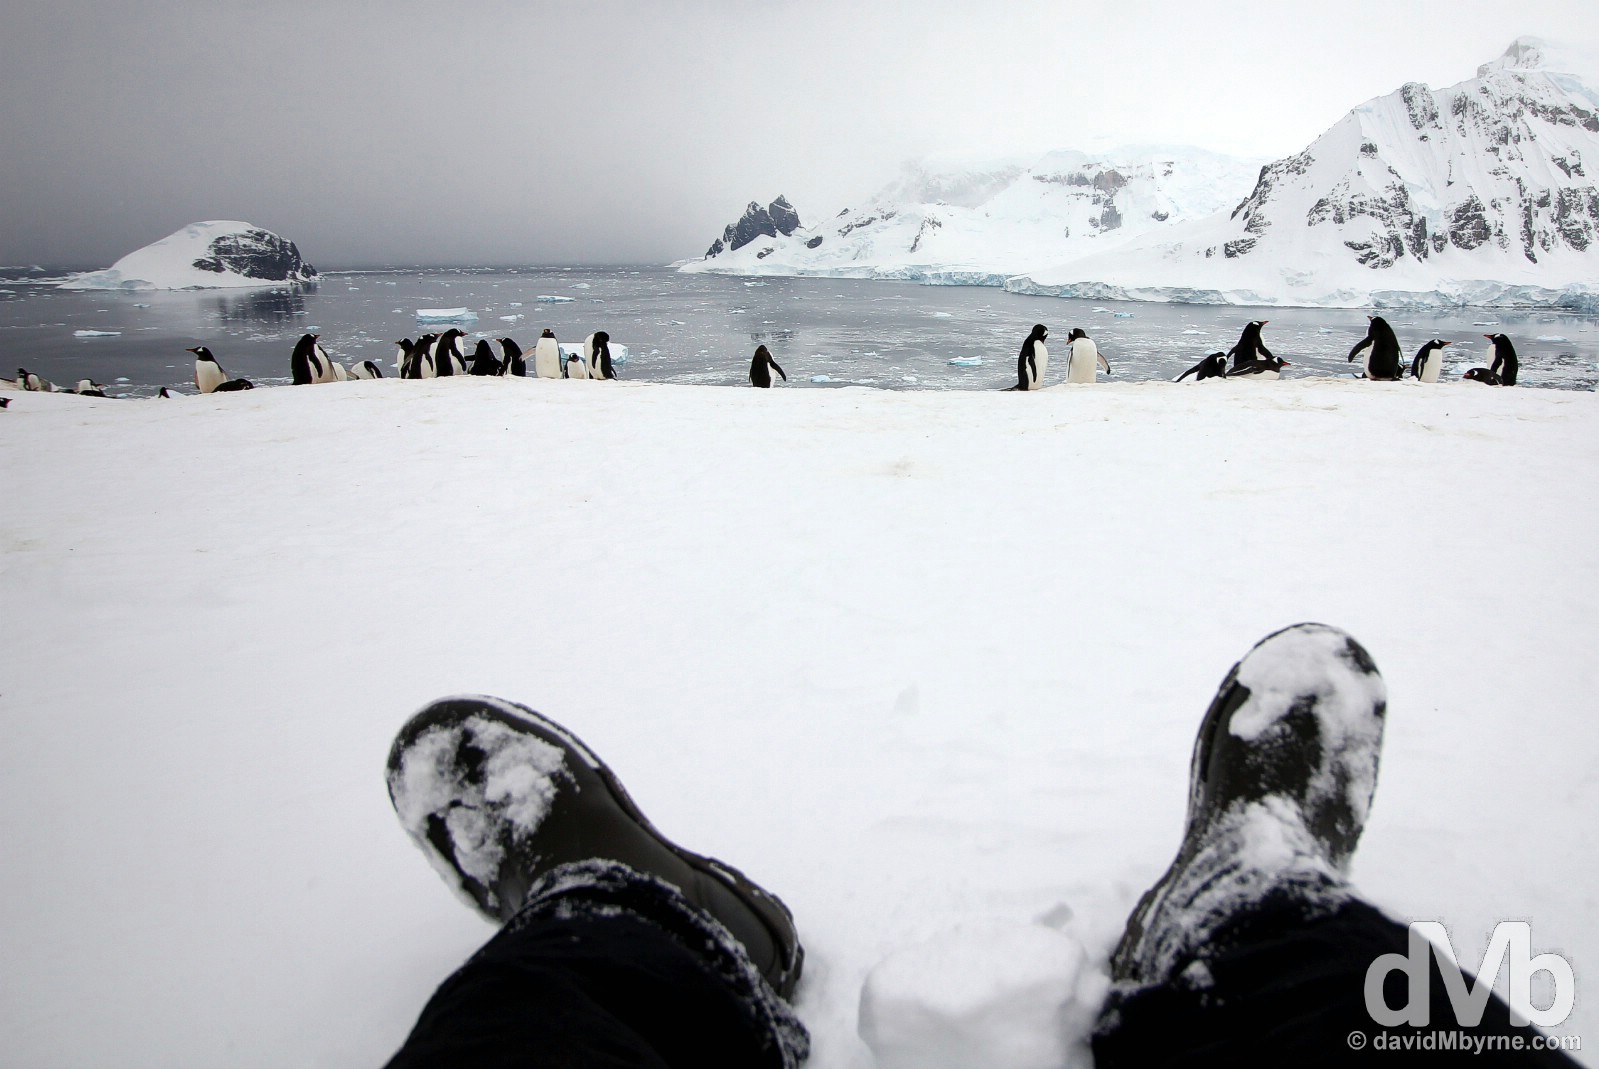 Hanging with the penguins on Danco Island, Antarctica. December 2, 2015.